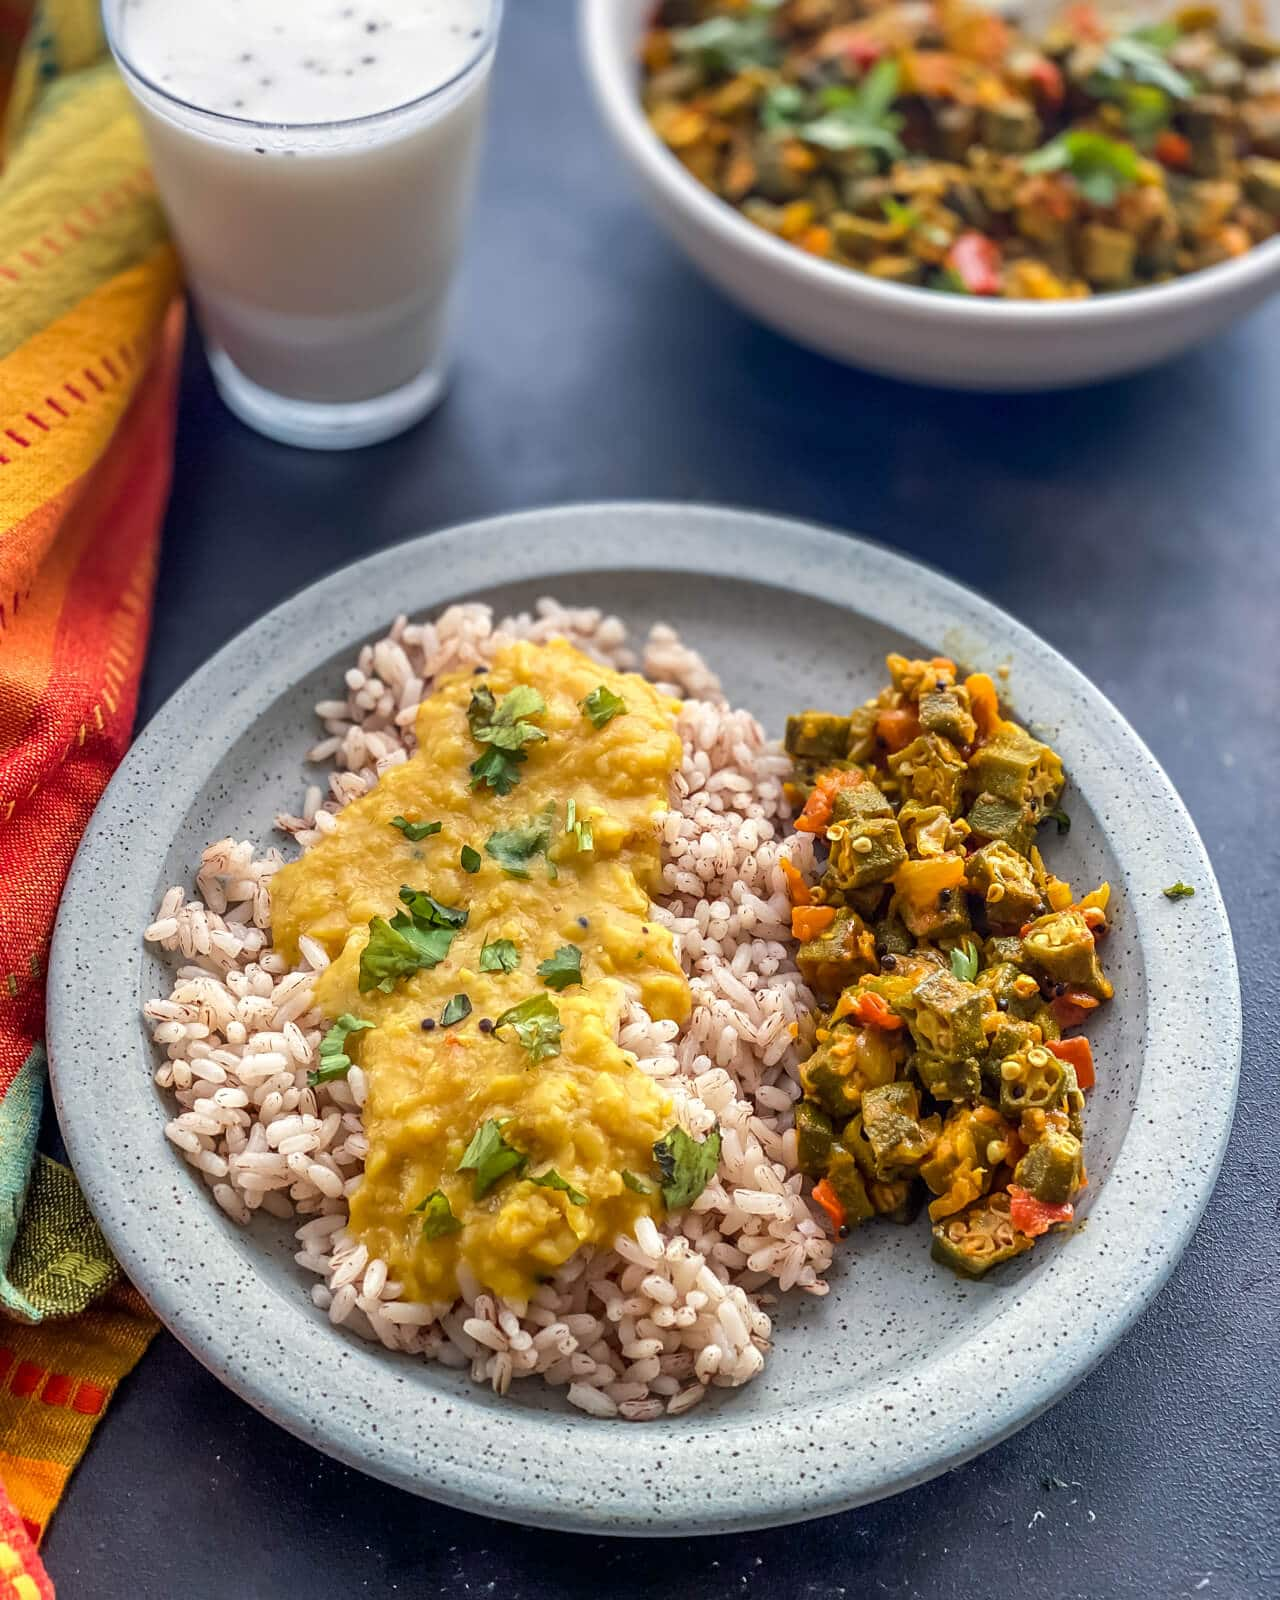 Bhindi subzi served with rice and dal in a grey plate